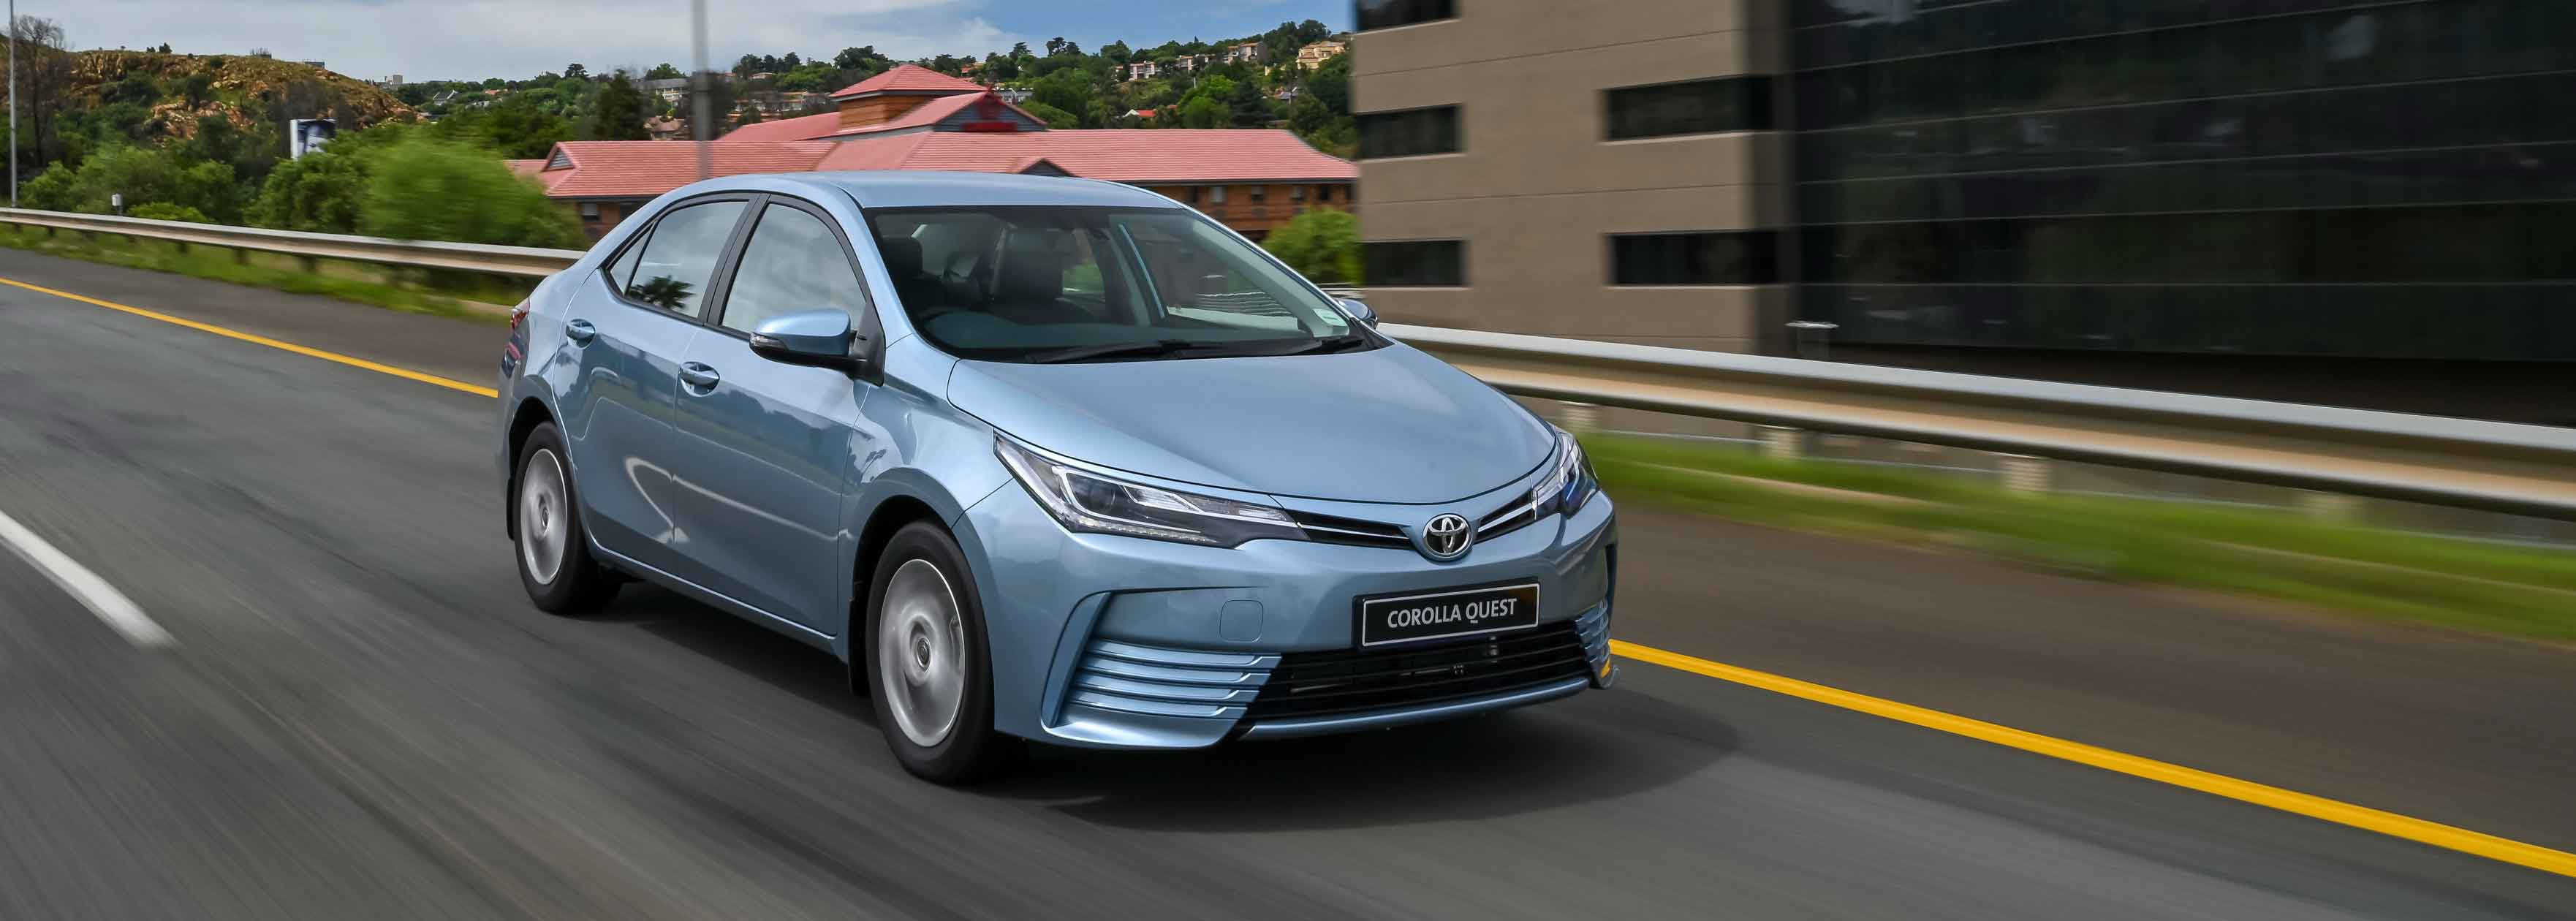 Toyota Corolla Quest now with added convenience features